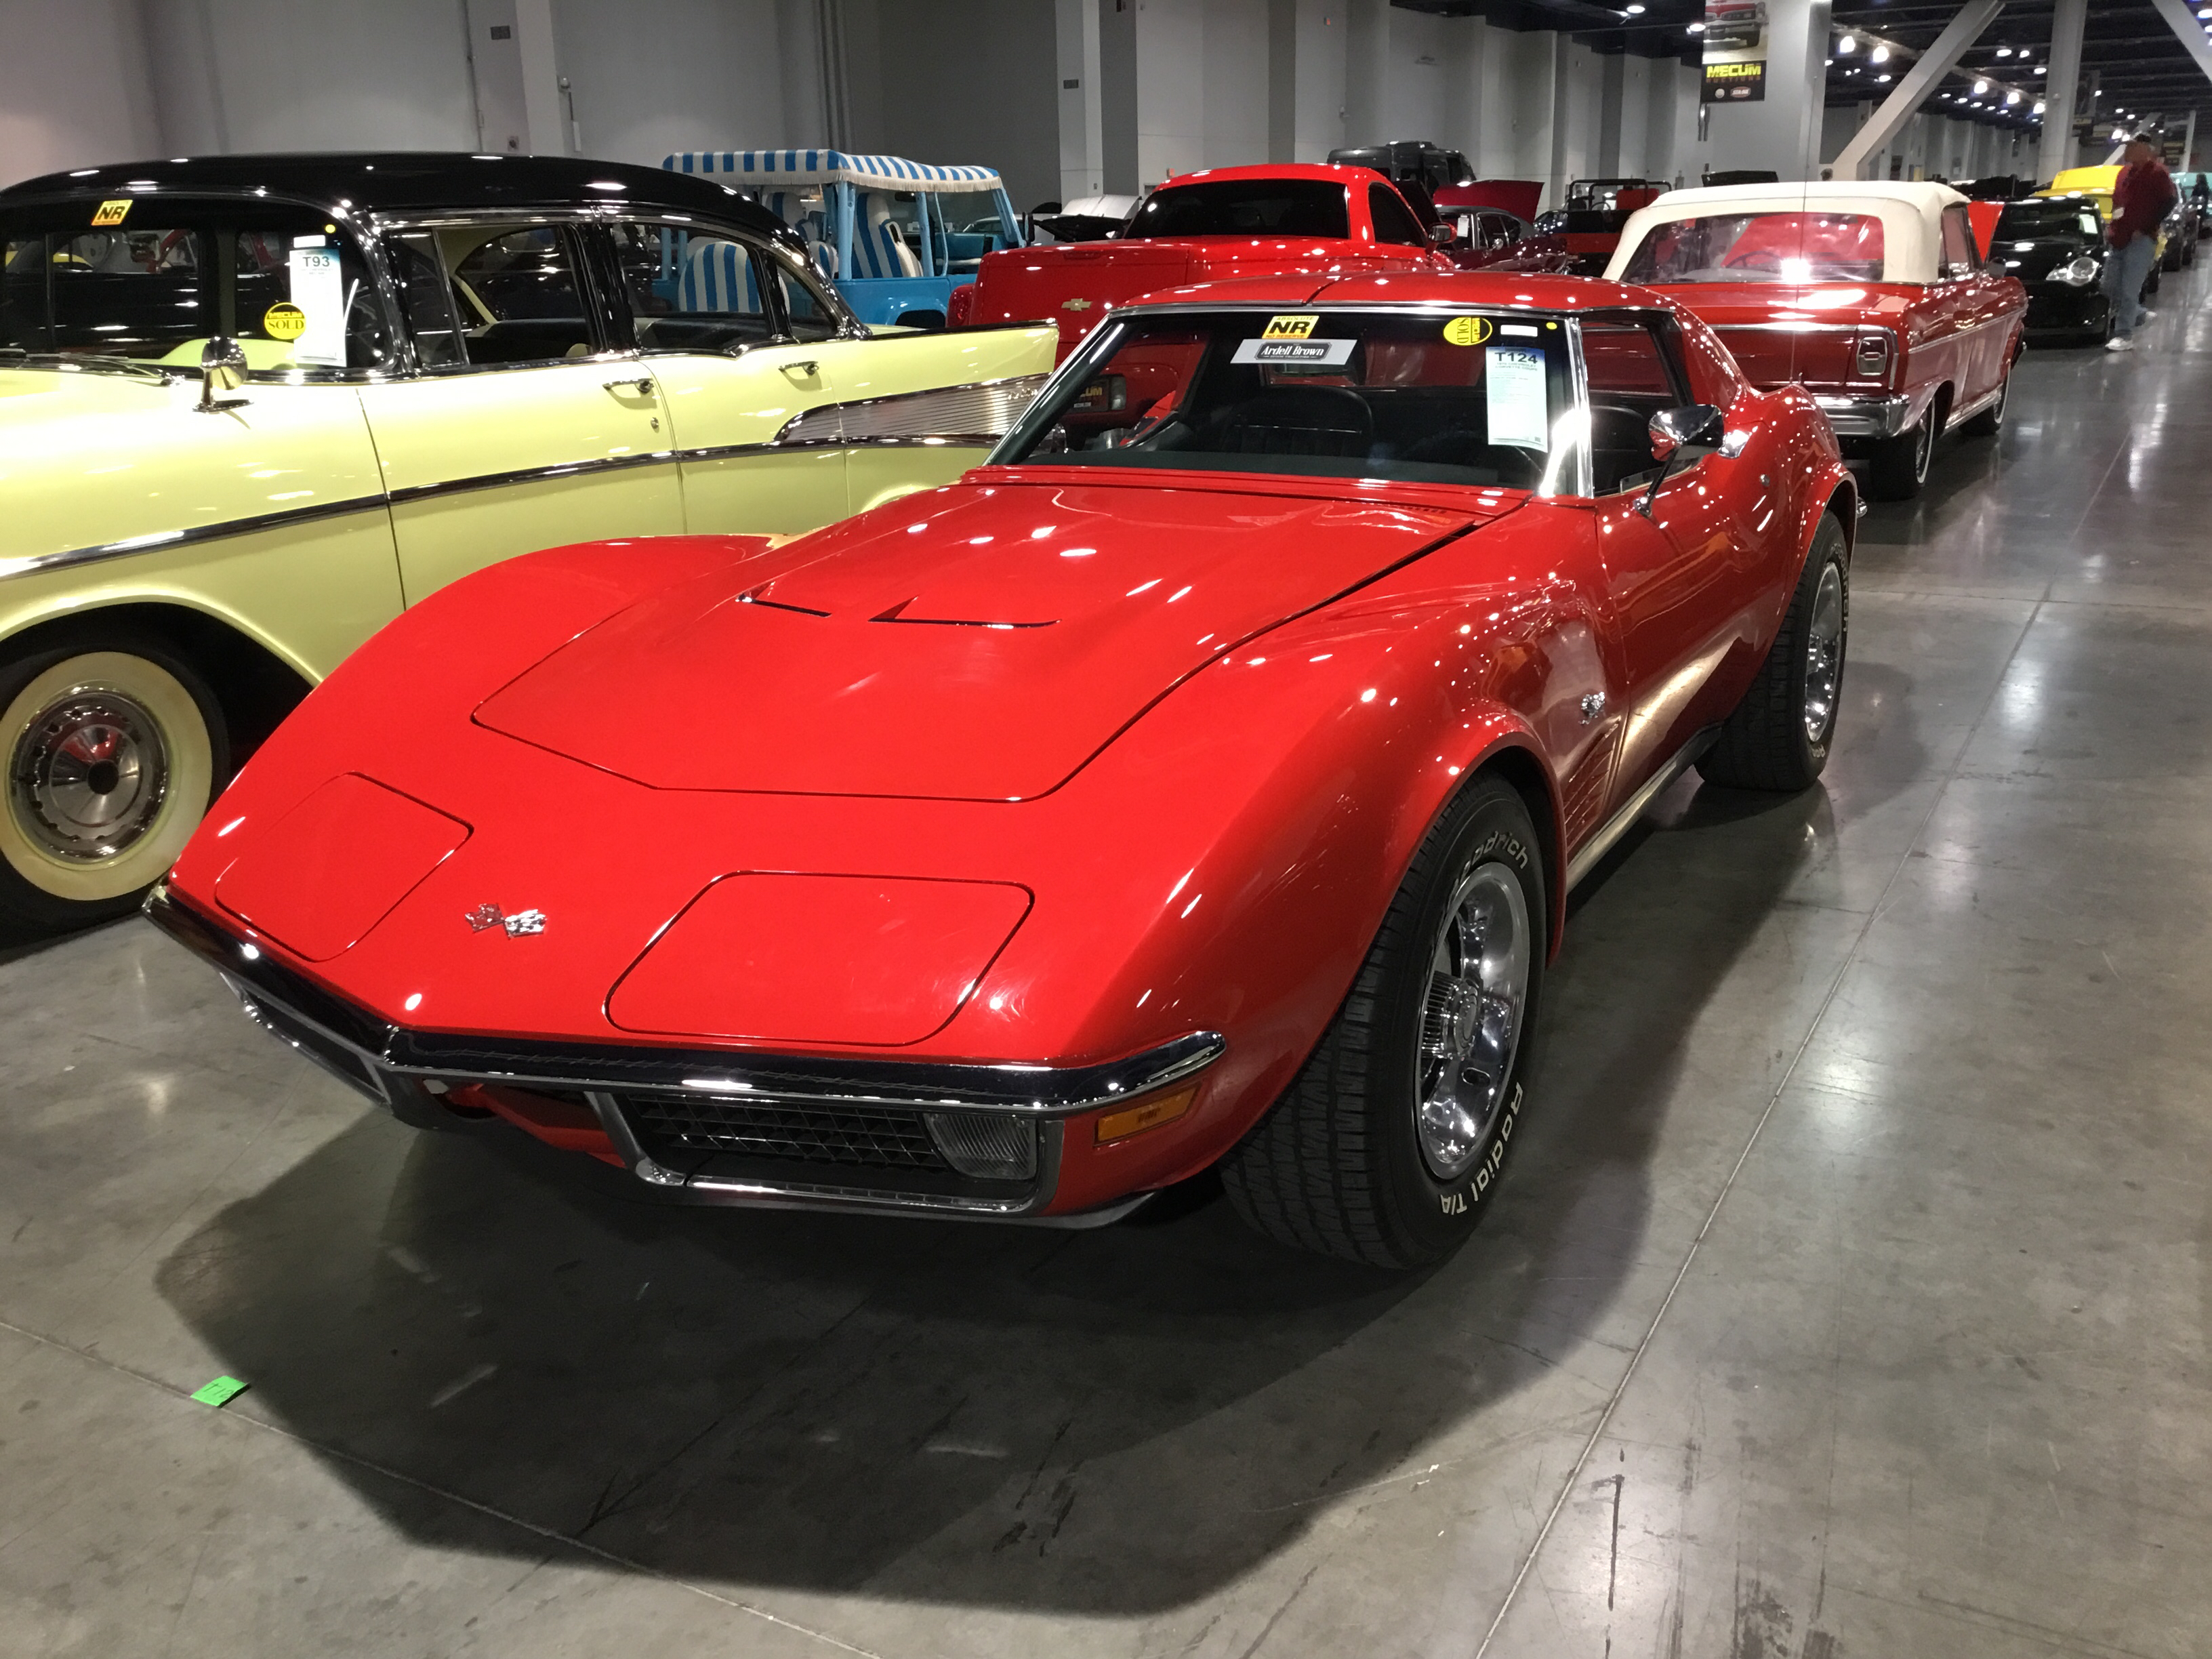 1970 Chevrolet Corvette Values Hagerty Valuation Tool